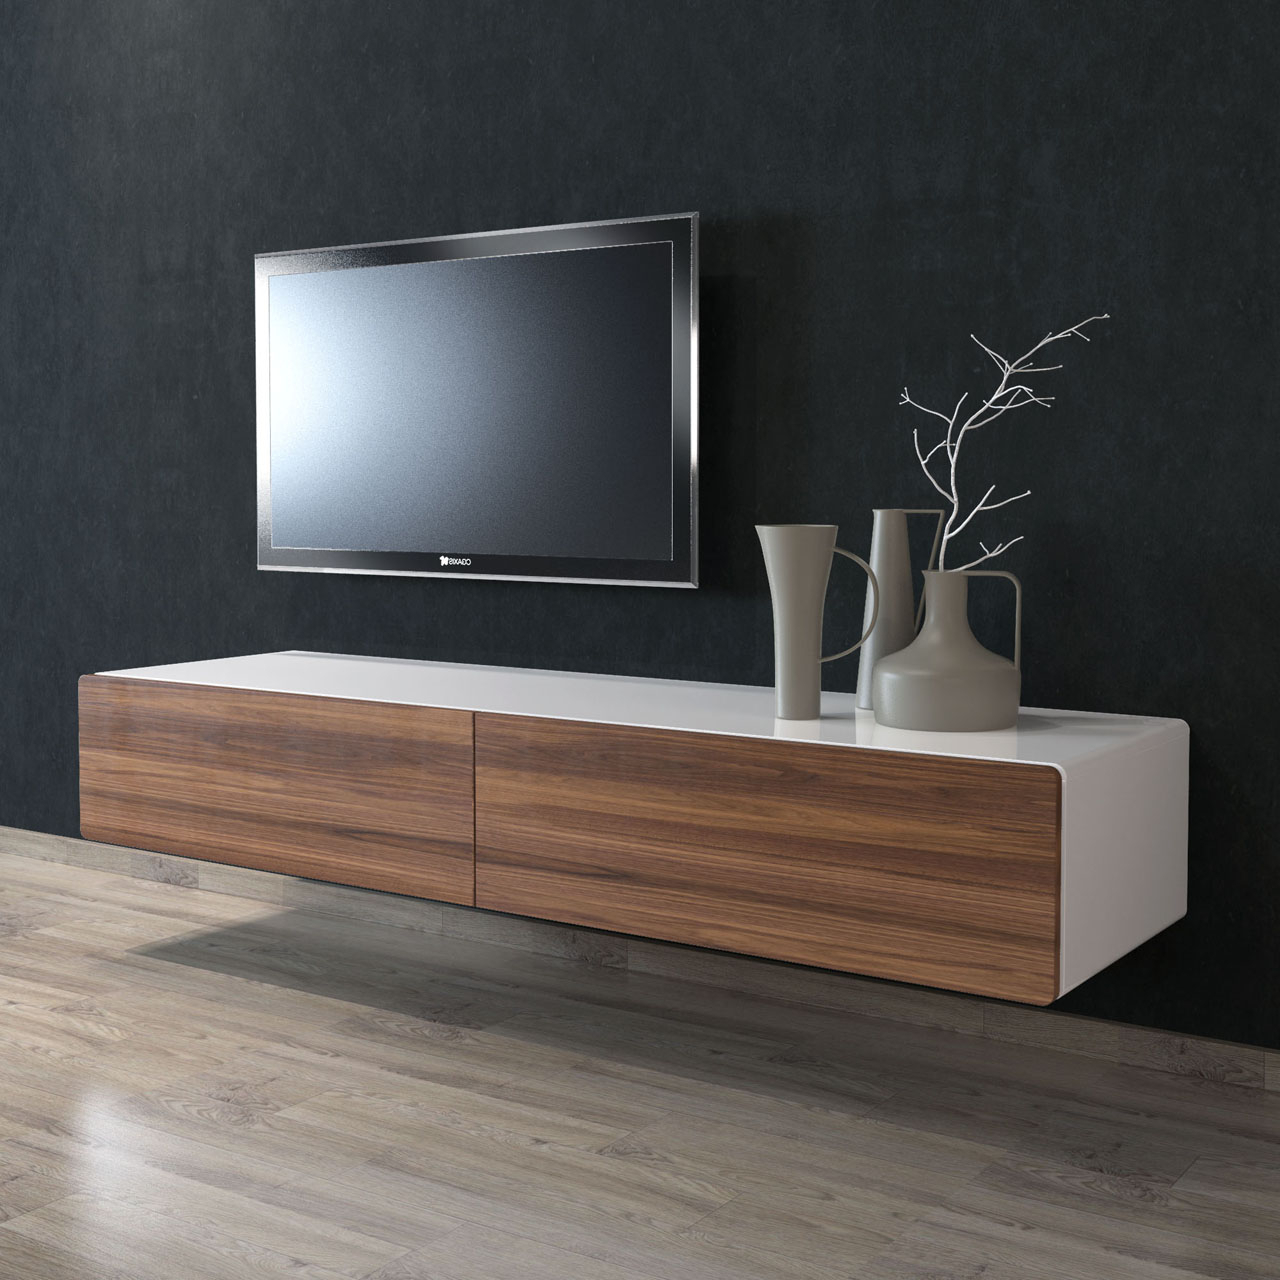 166cm Floating Tv Unit – Gainsville For Most Recently Released Floating Tv Cabinets (View 5 of 20)